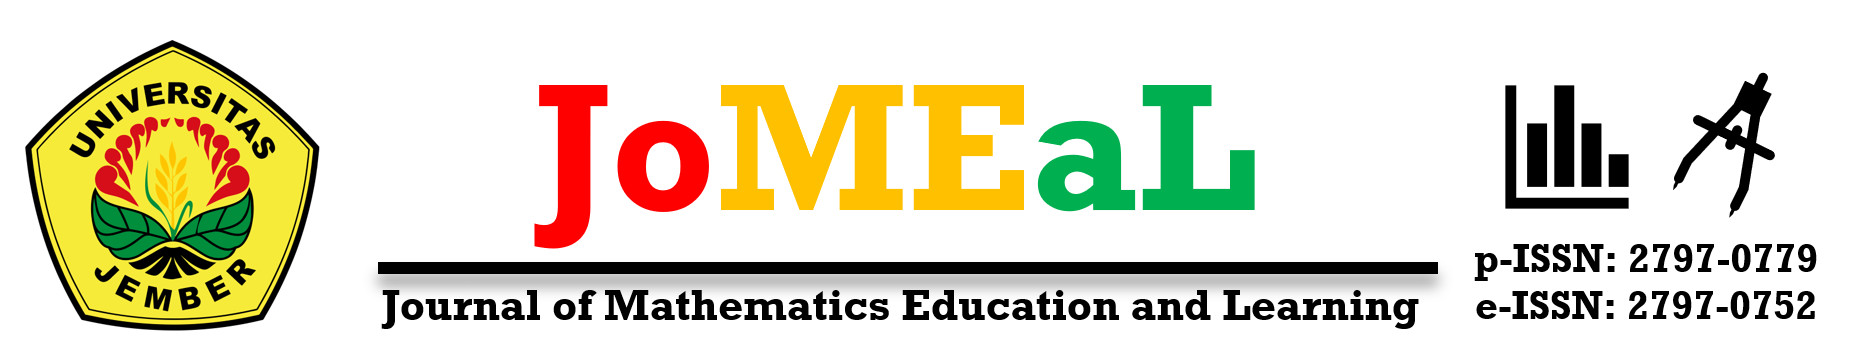 Journal of Mathematics Education and learning